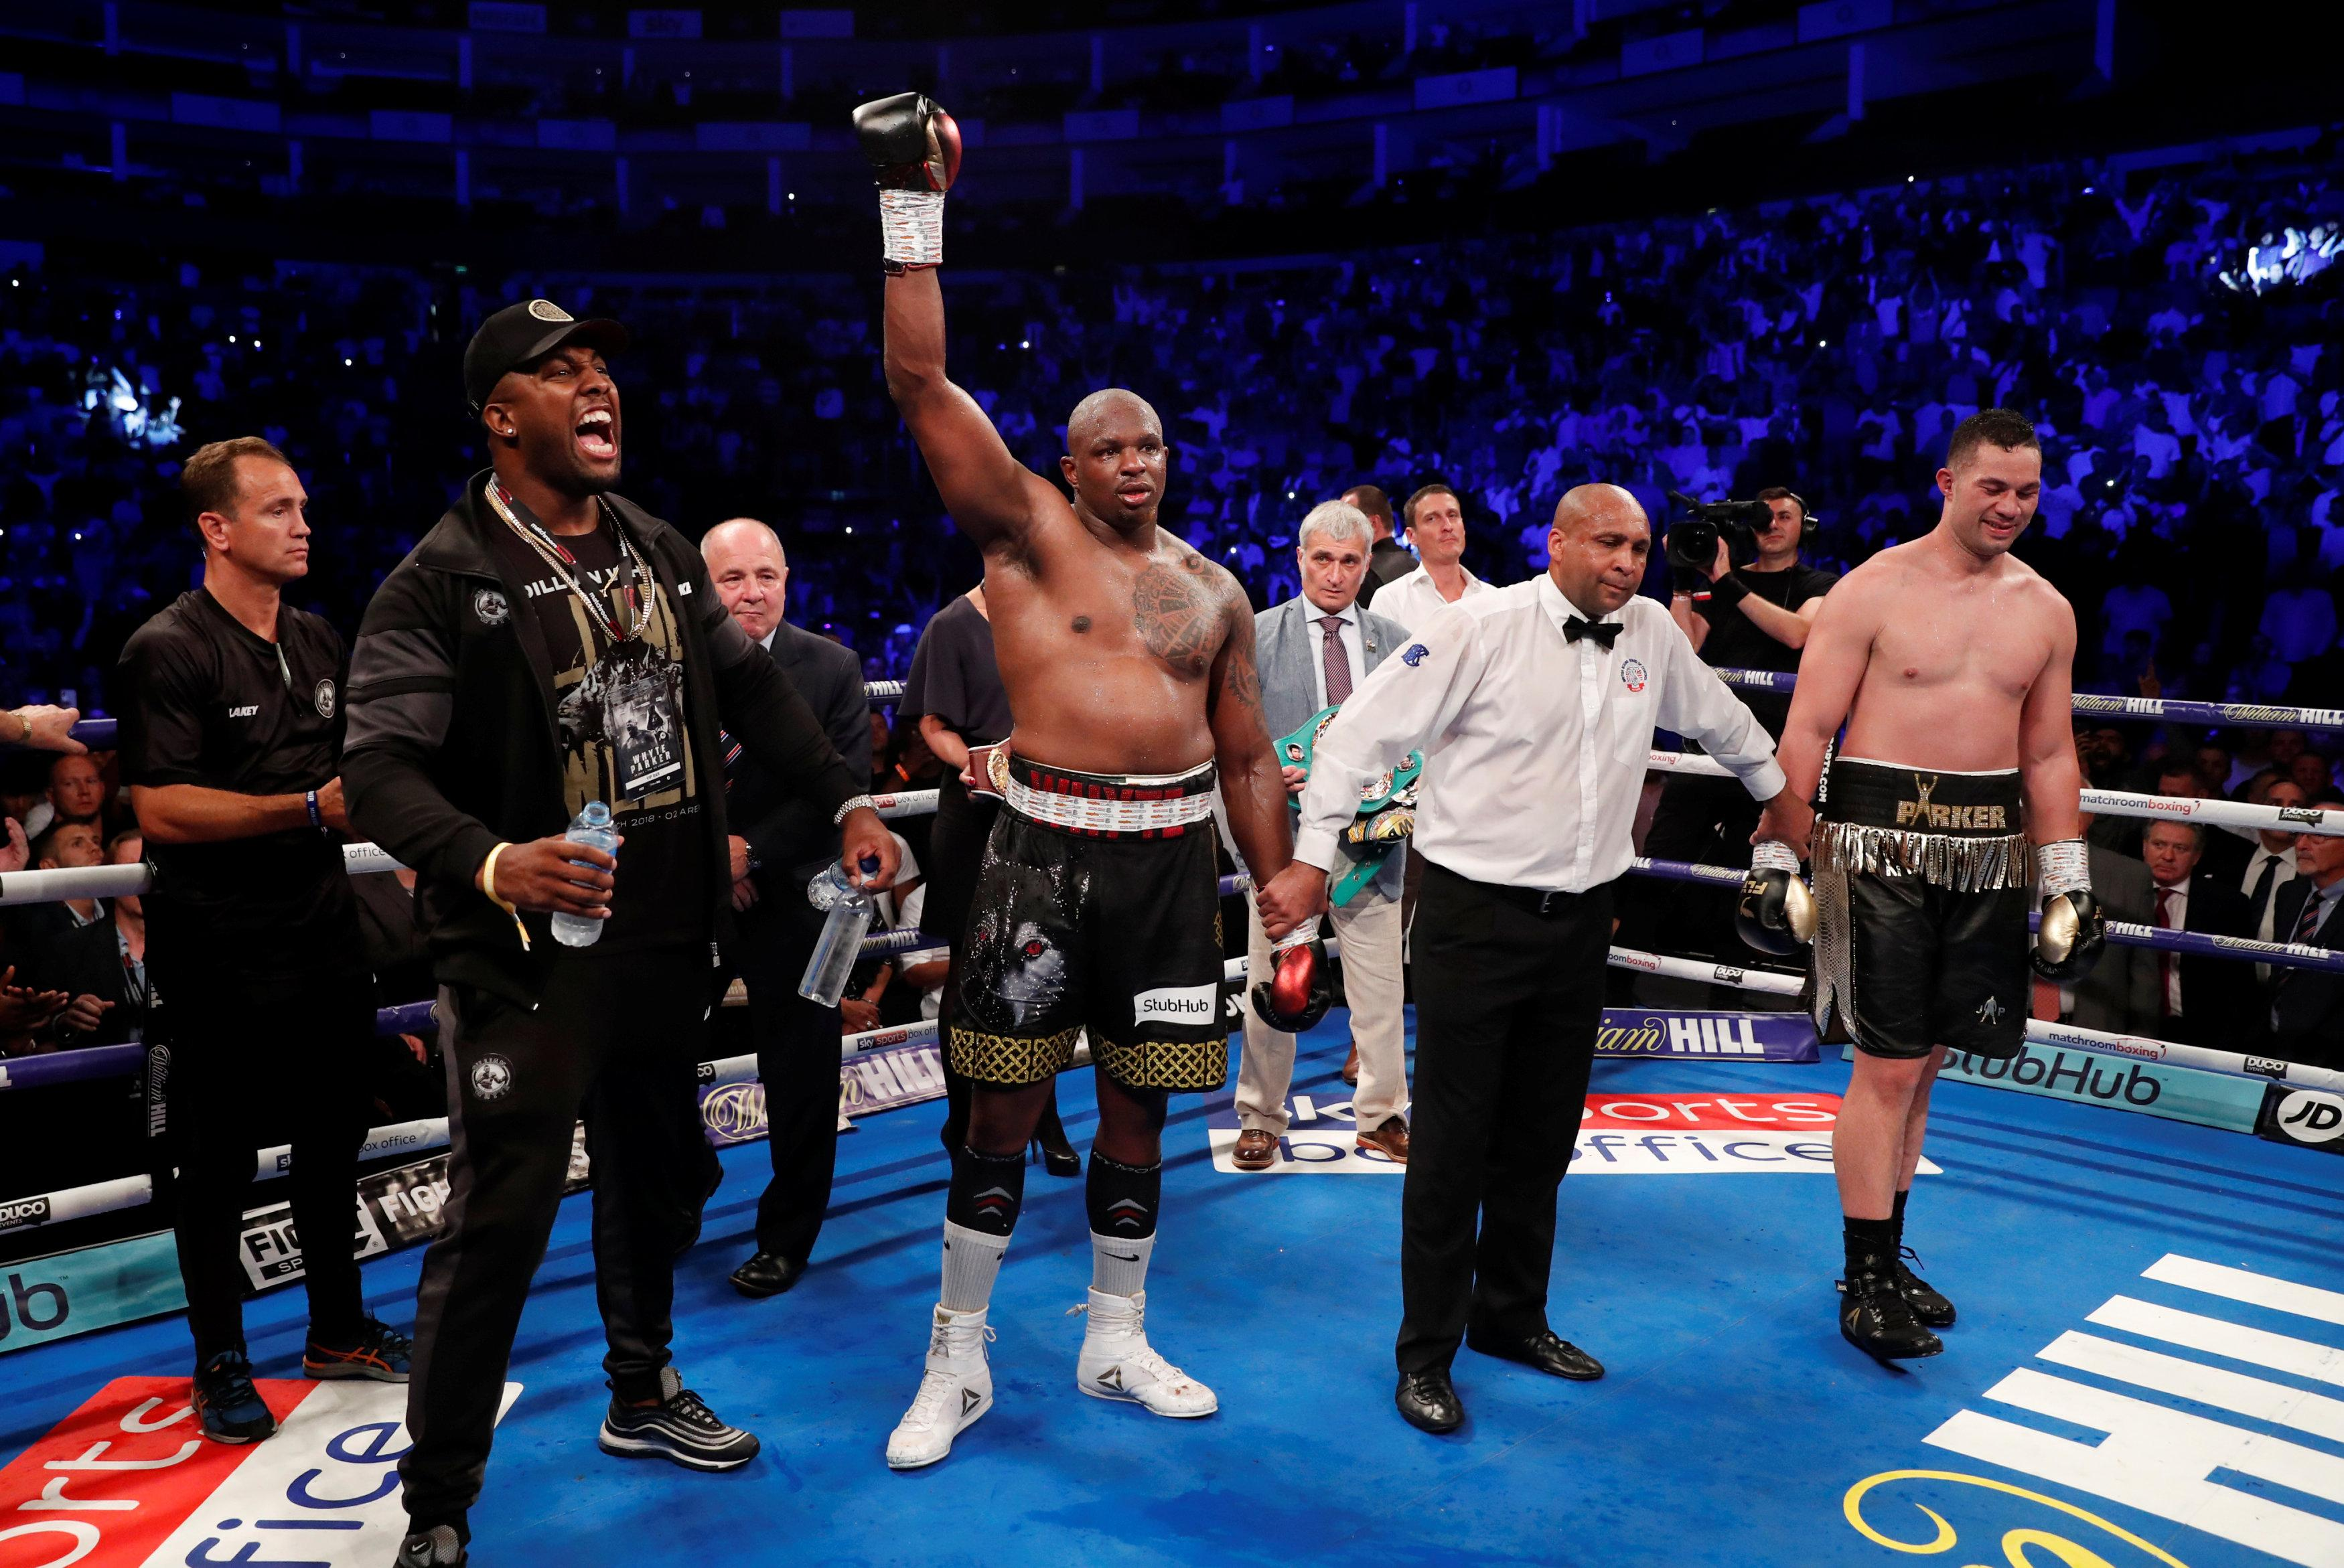 Dillian Whyte was exhausted at the end but held on for a memorable victory